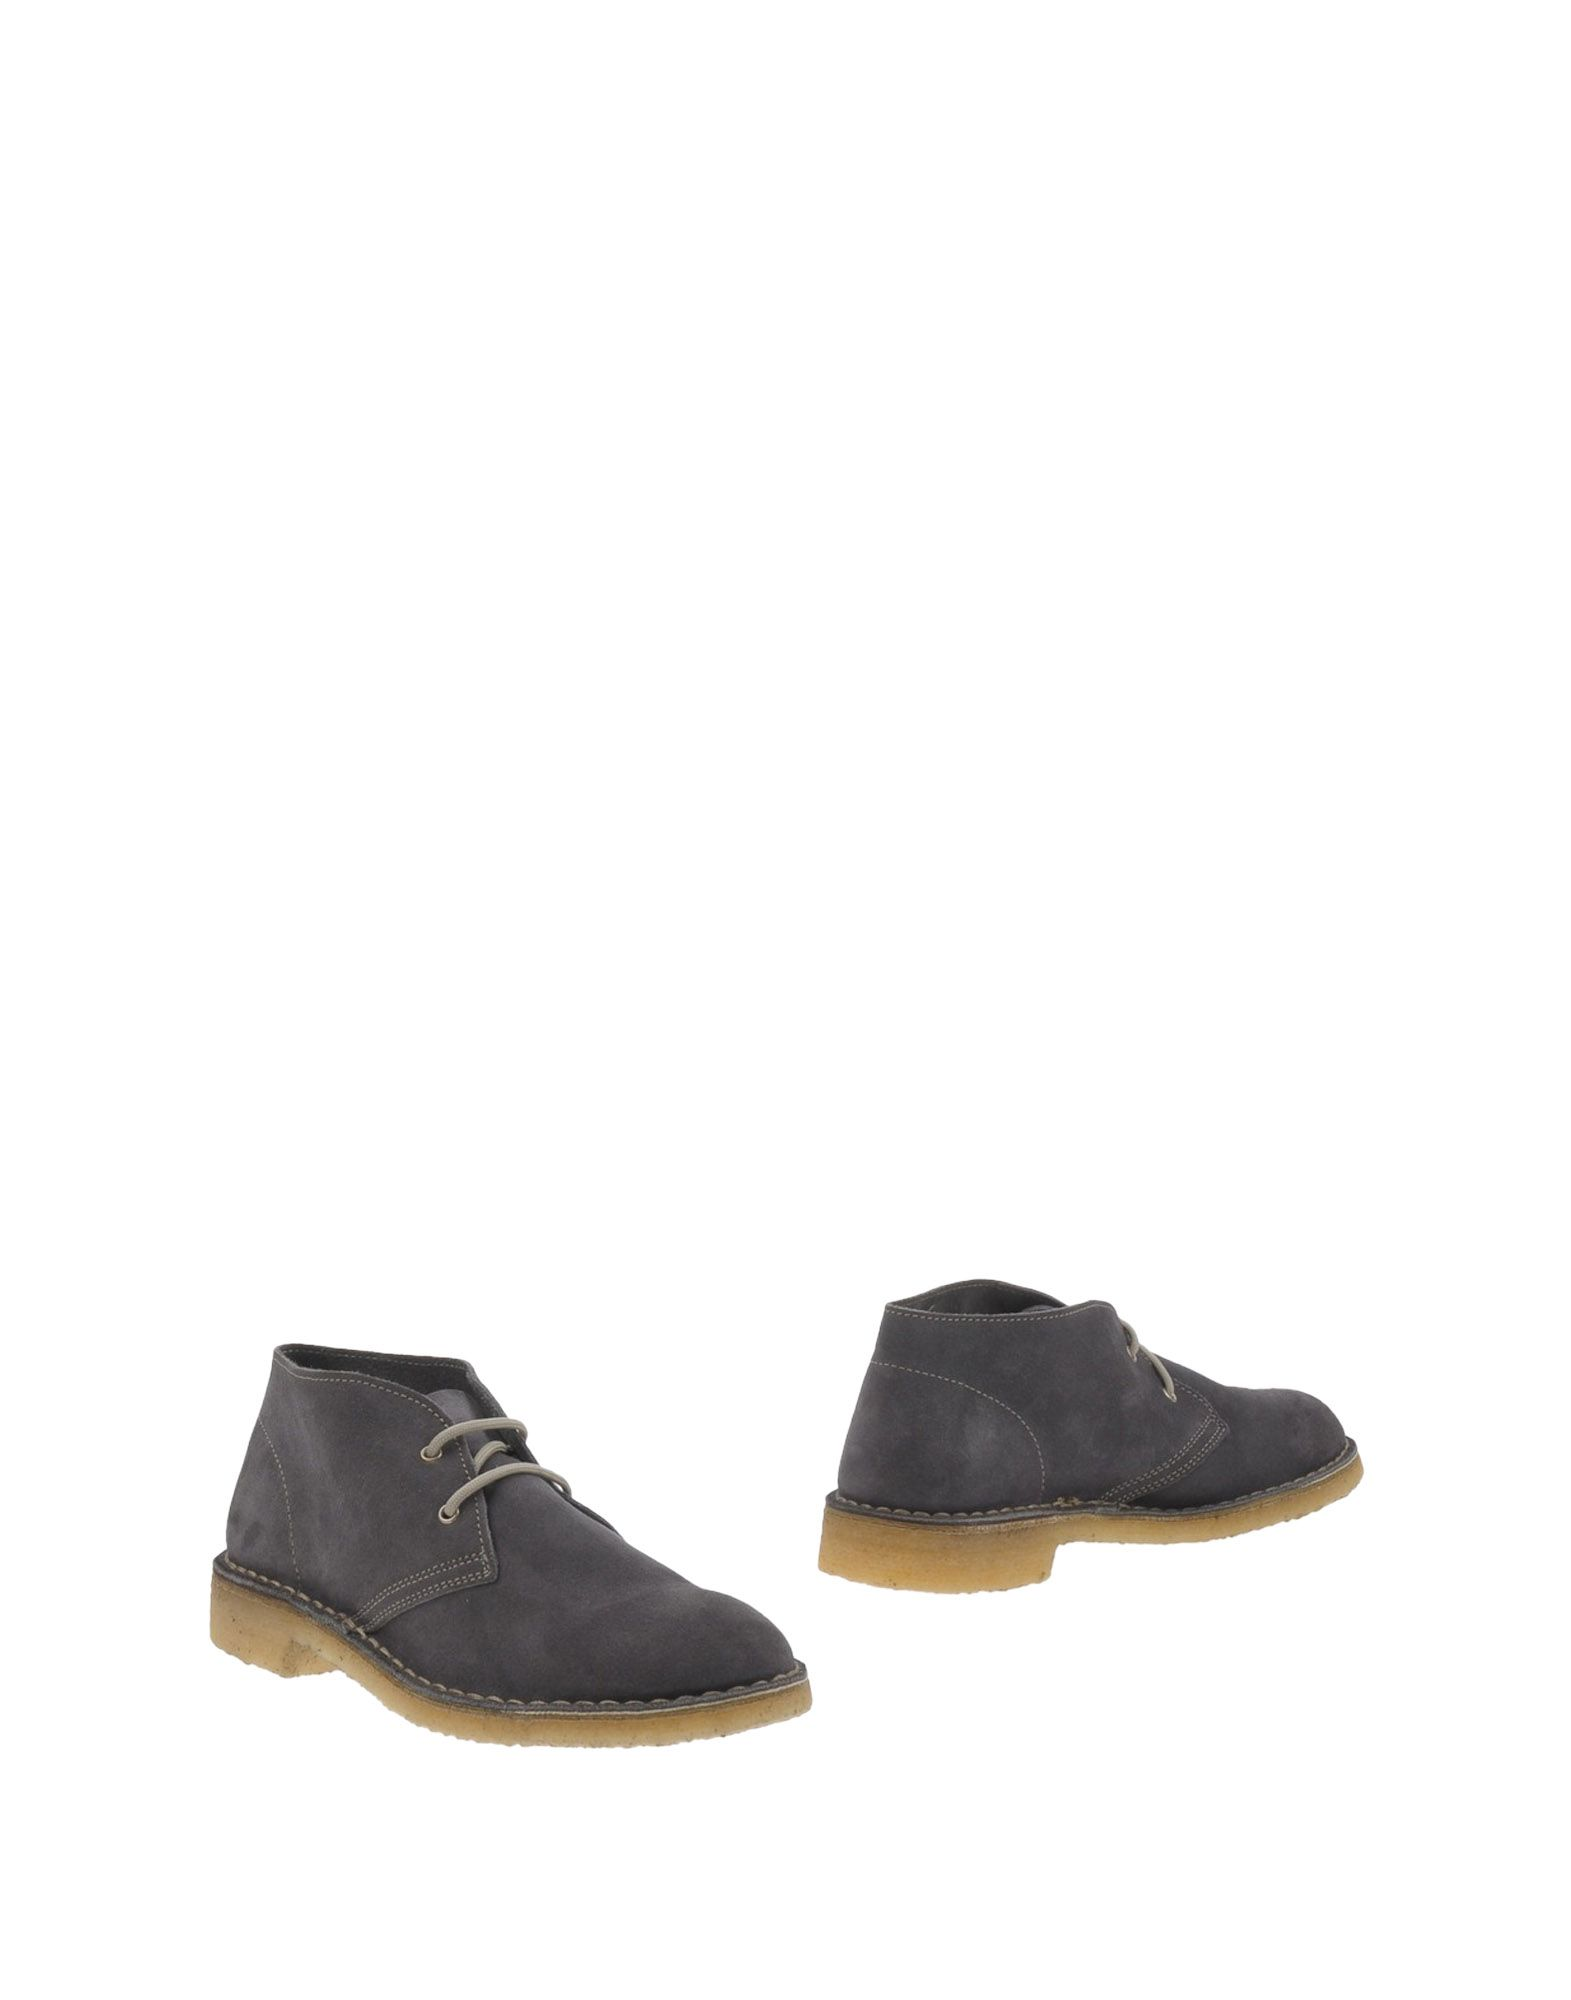 FOOTWEAR - Ankle boots on YOOX.COM CUOIERIA